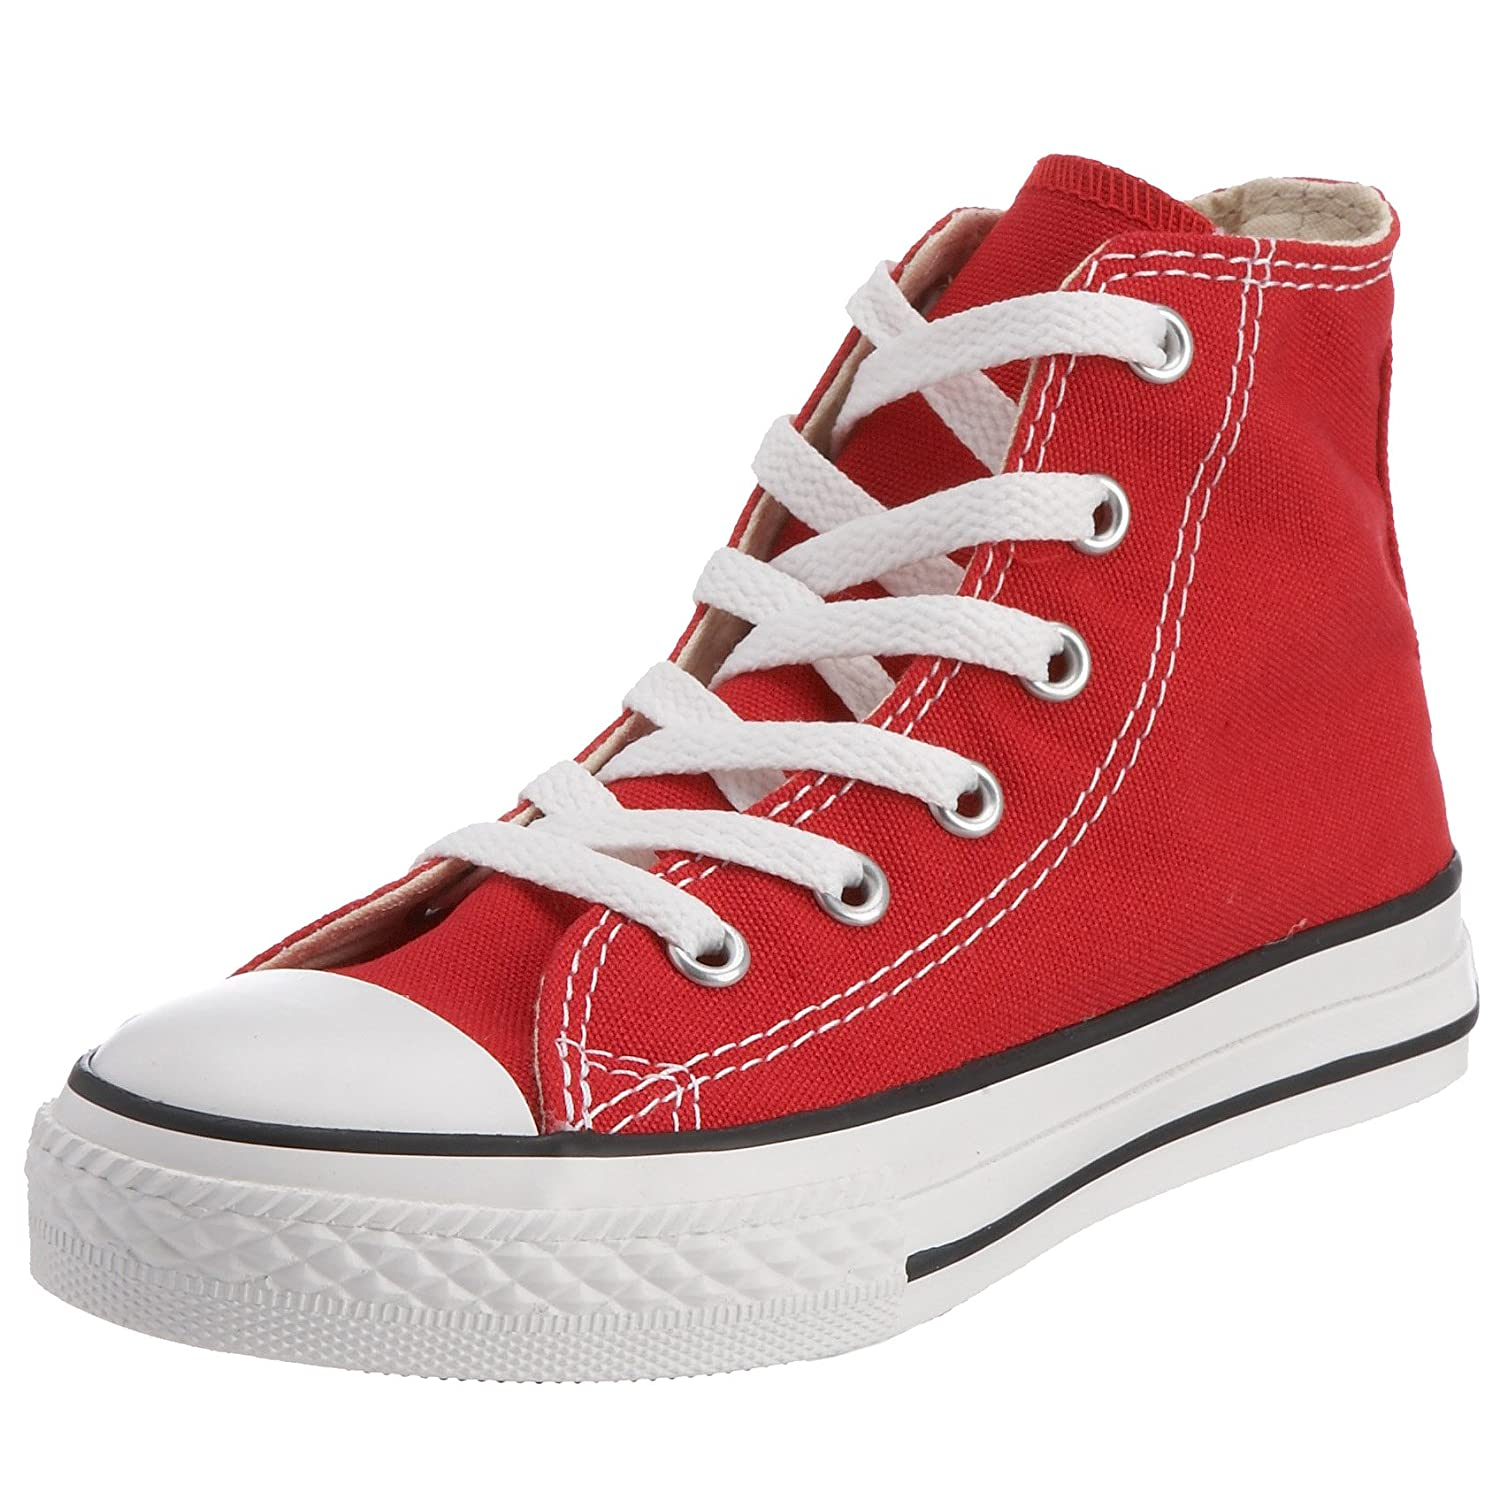 converse shoes for boys